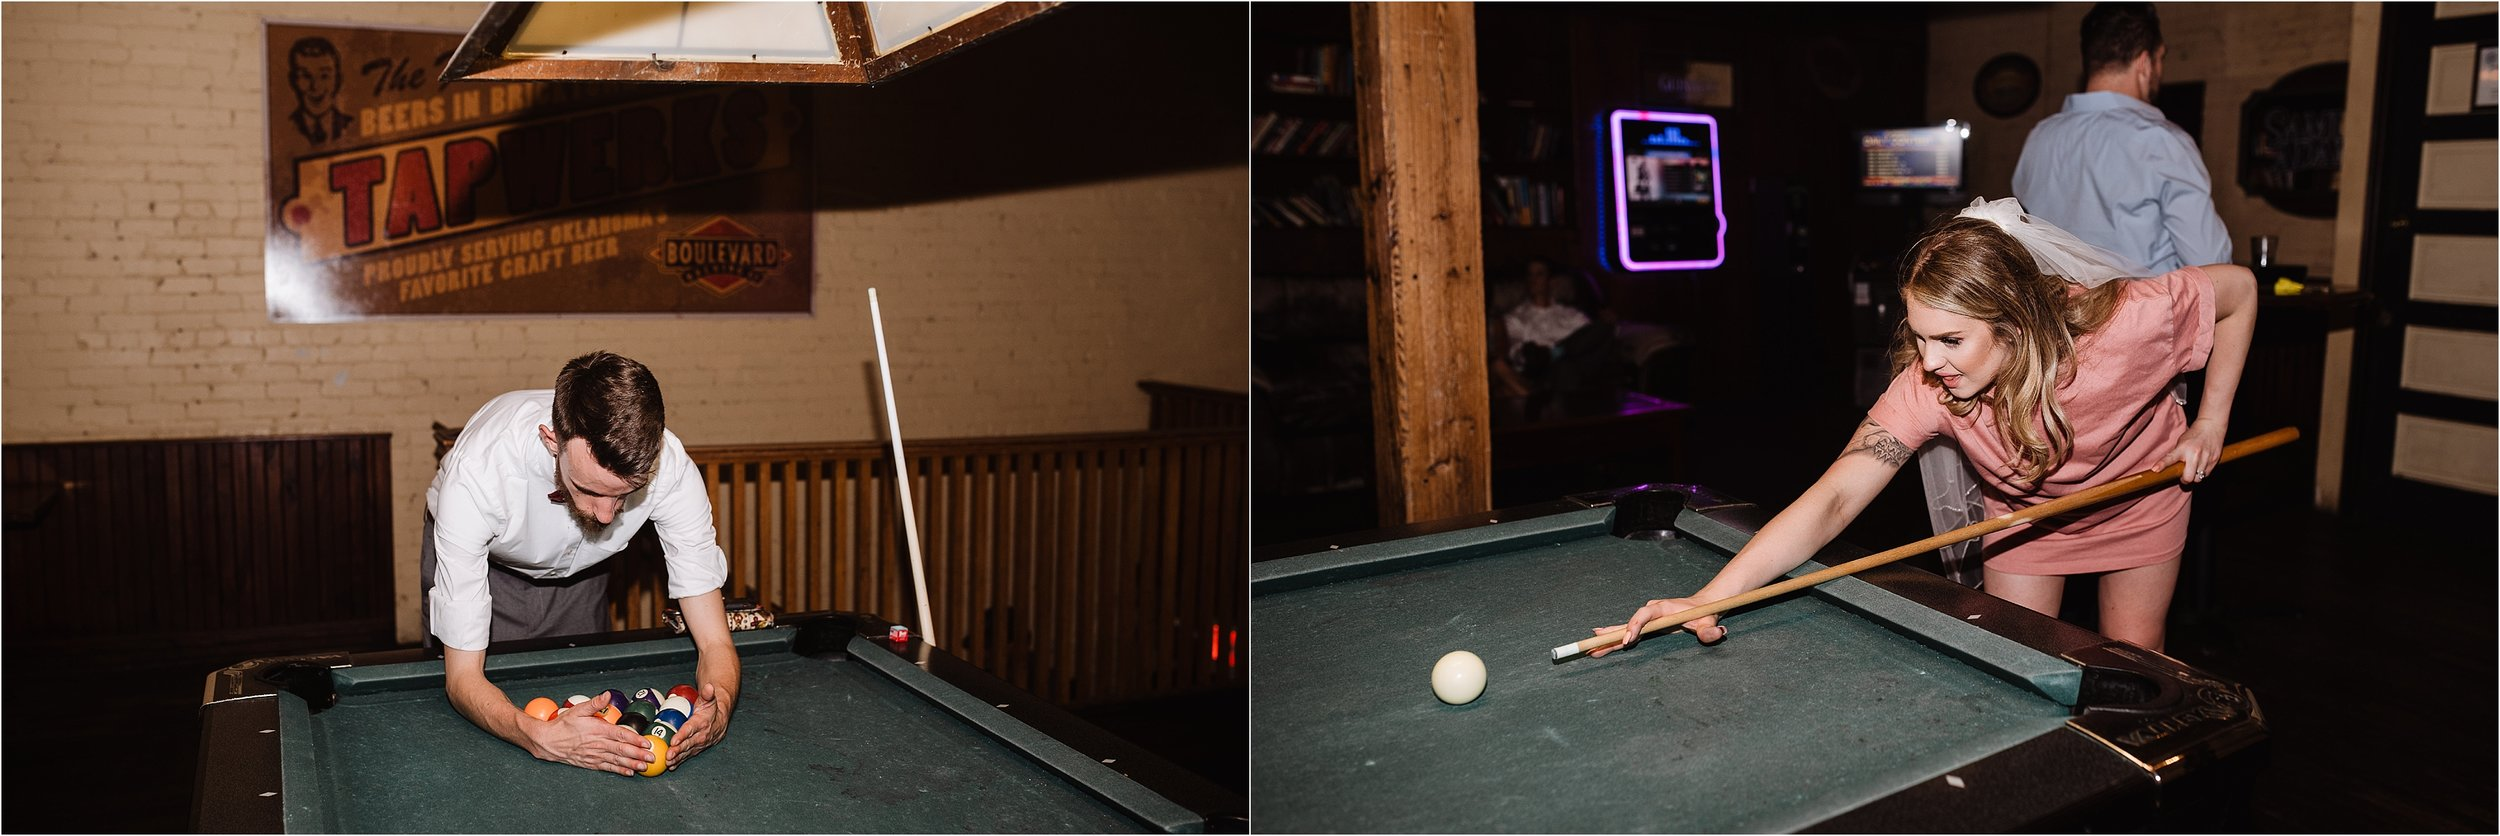 wedding party bride groom bridesmaids groomsmen after party pool shooting playing cue balls stick chalk drinking beer party celebration congratulations wedding day